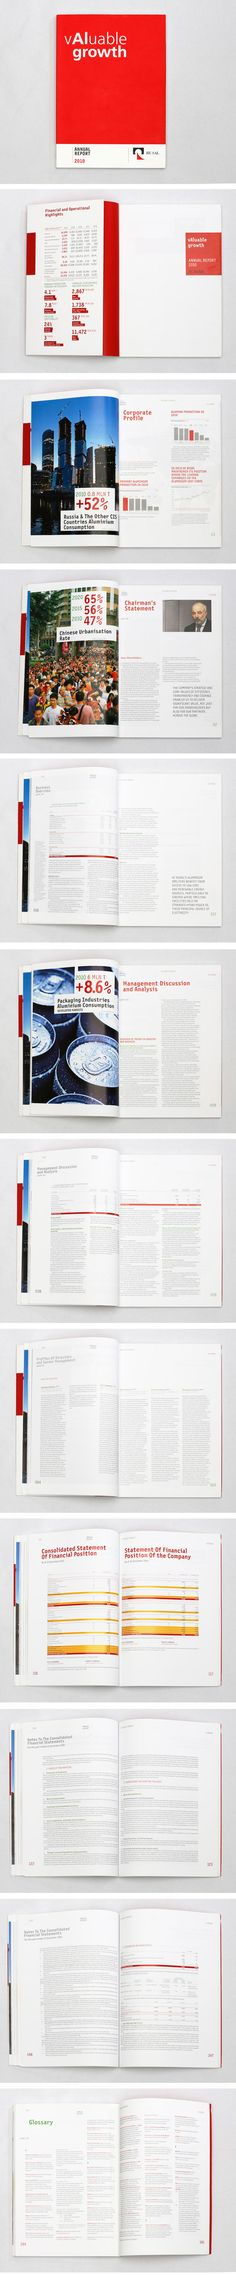 RUSAL 2010 annual report by Mike Loskov, via Behance